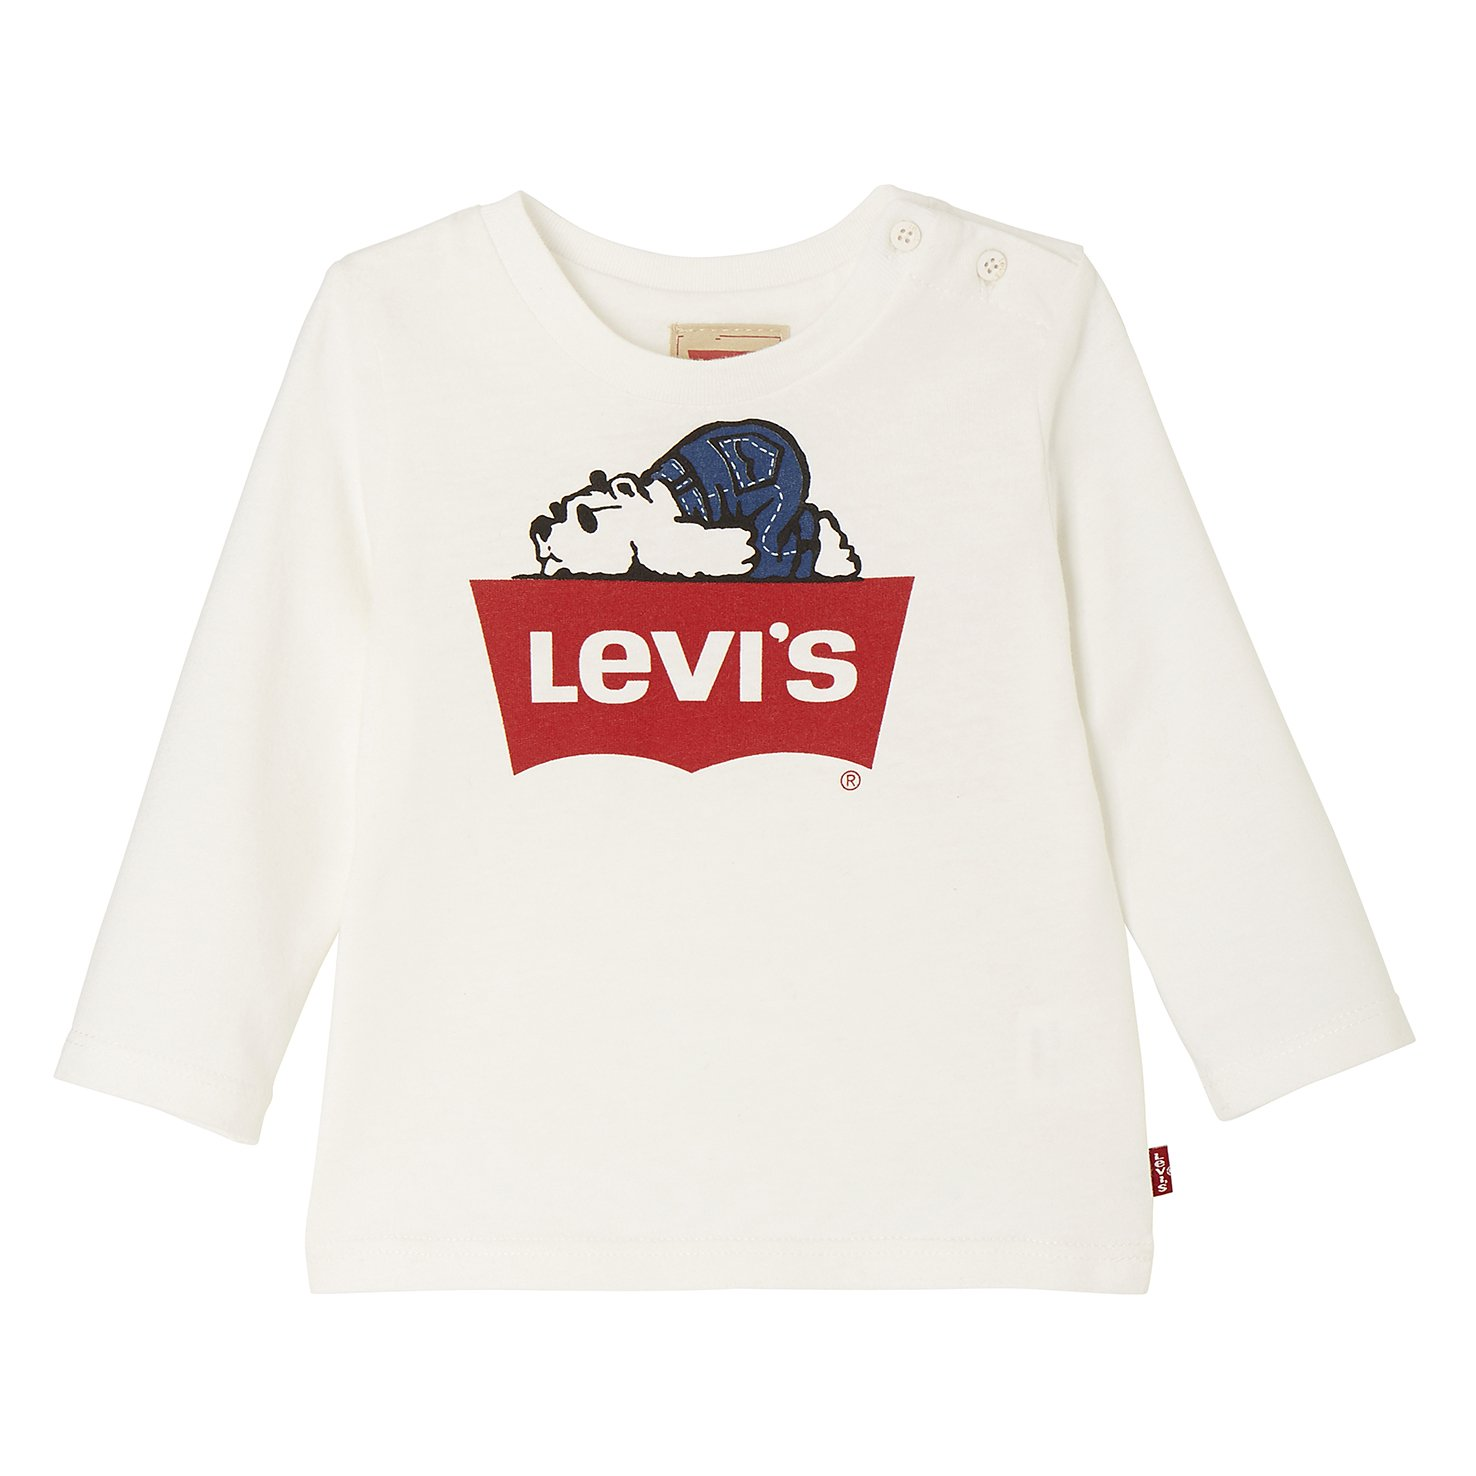 Levi's Kids Baby Boys' T-Shirt Levi' s Kids NM10004